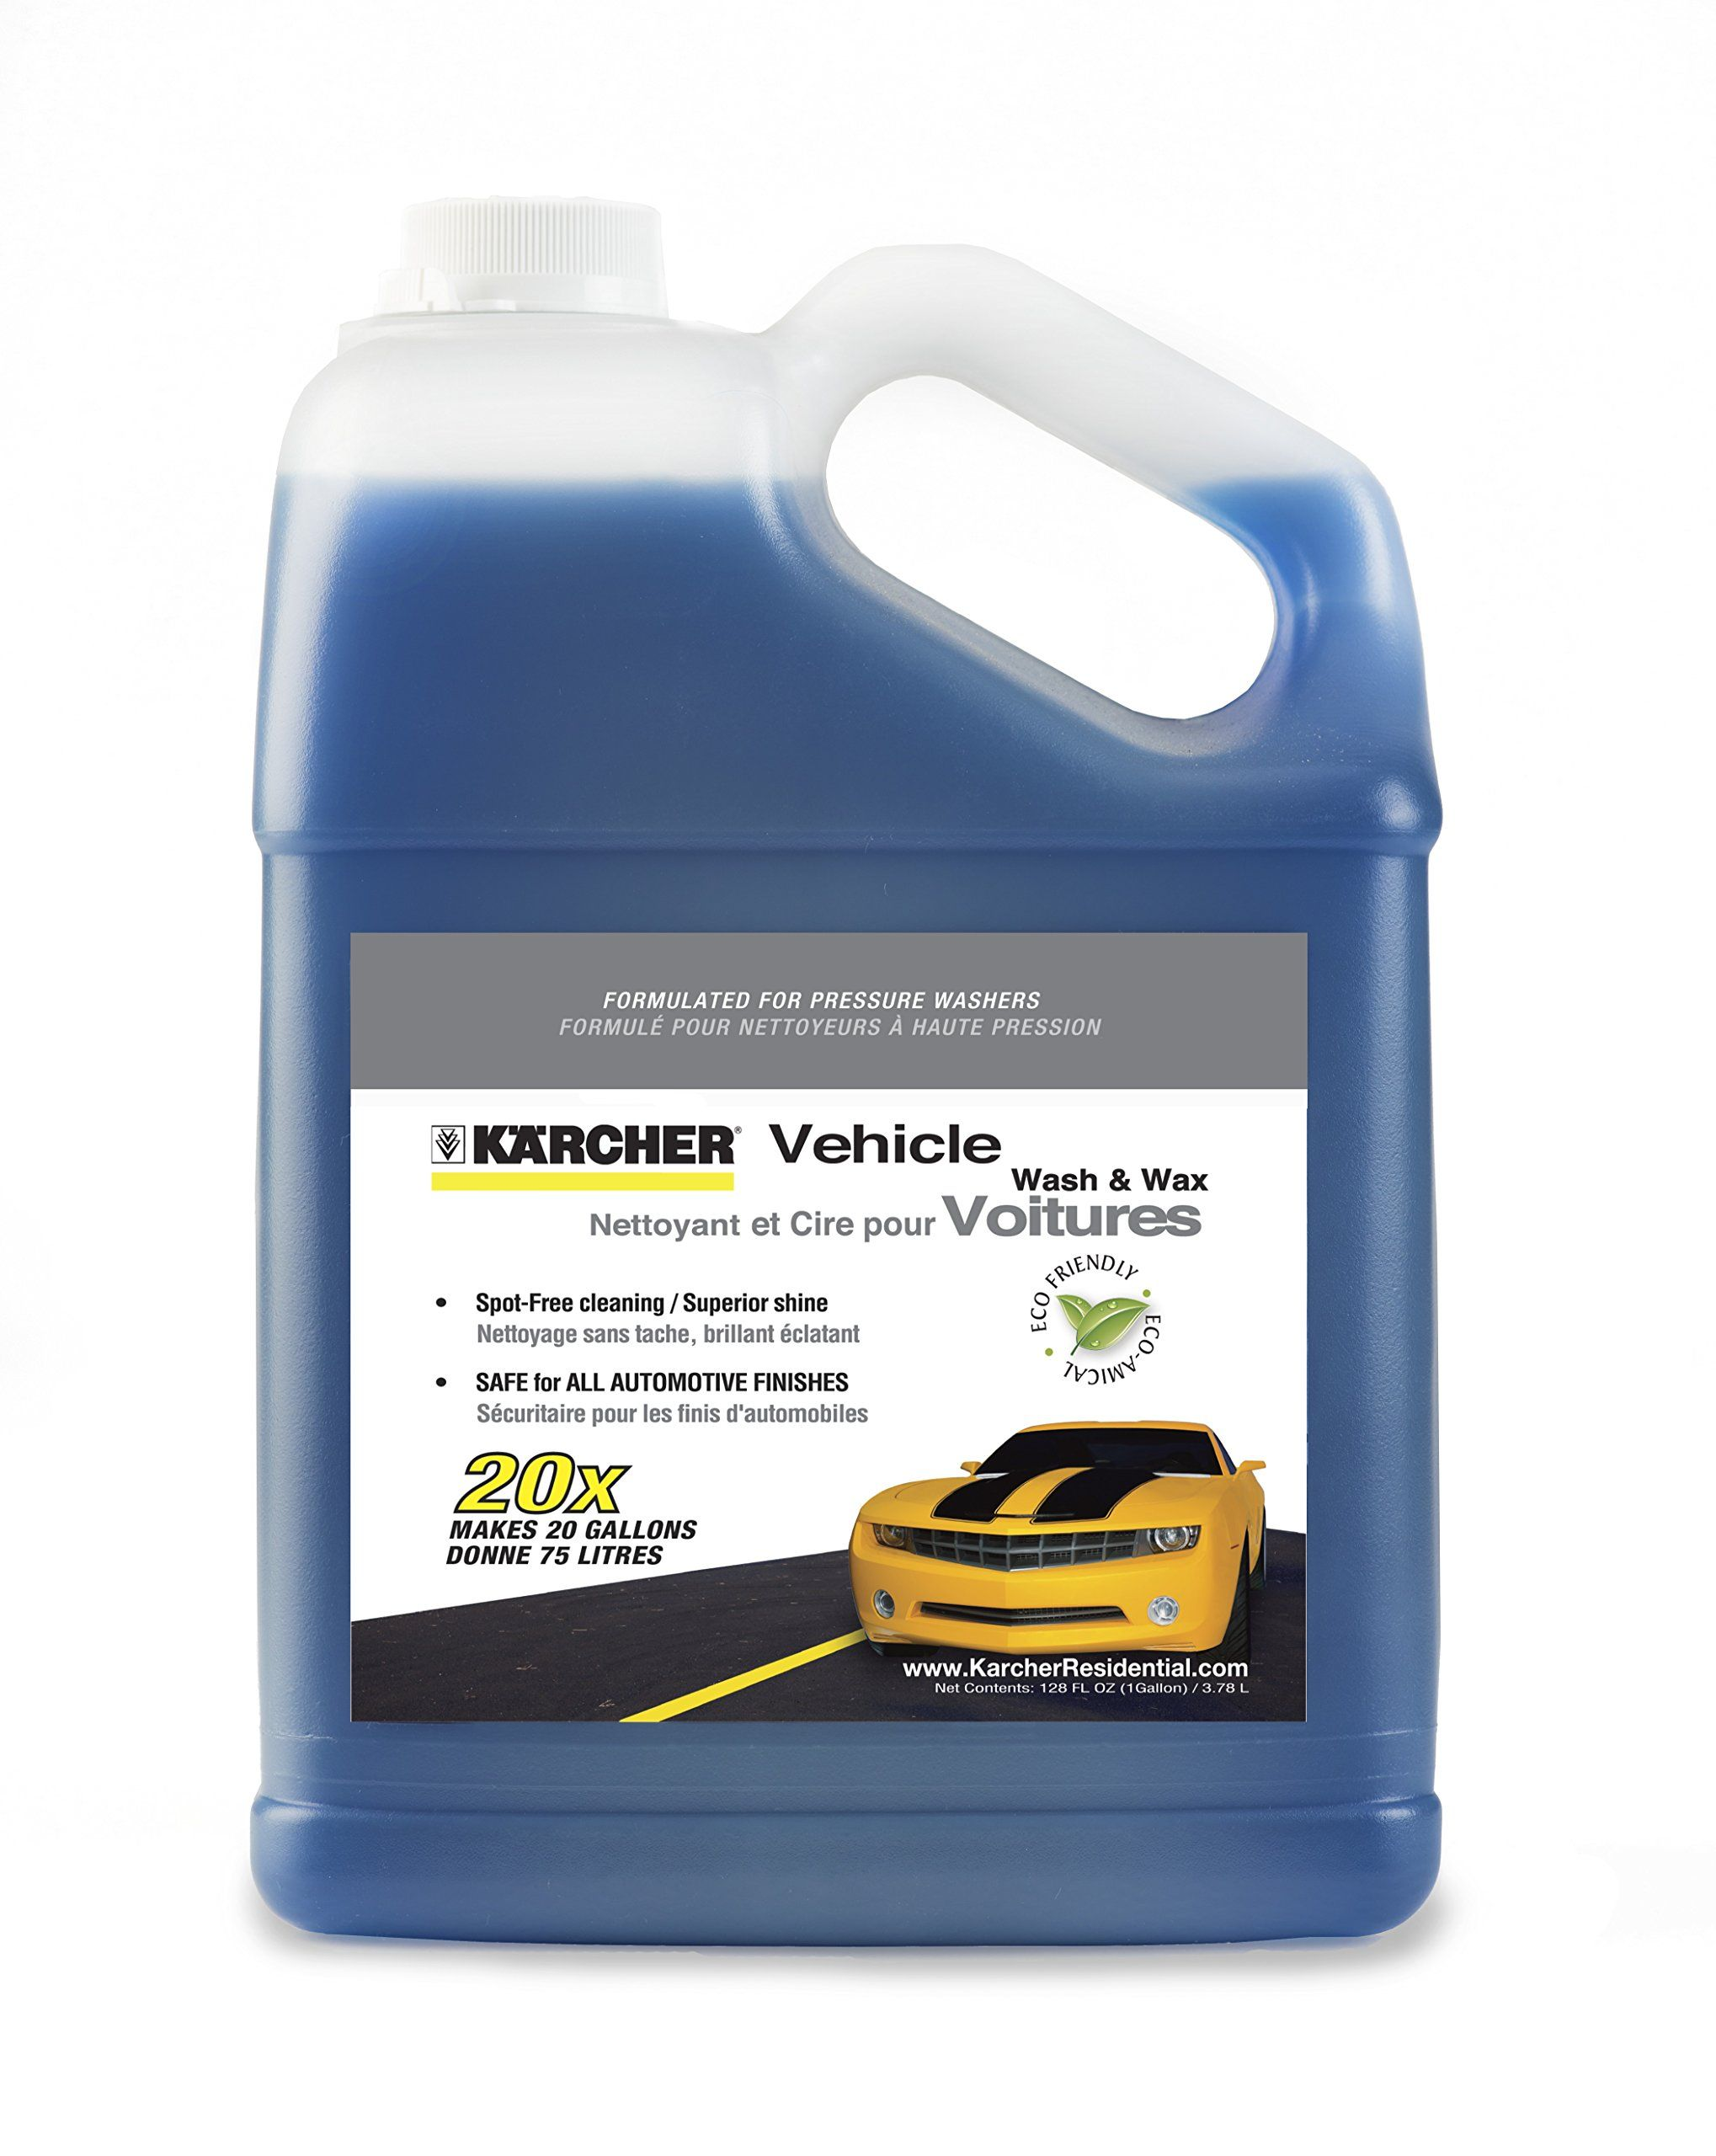 karcher vehicle detergent